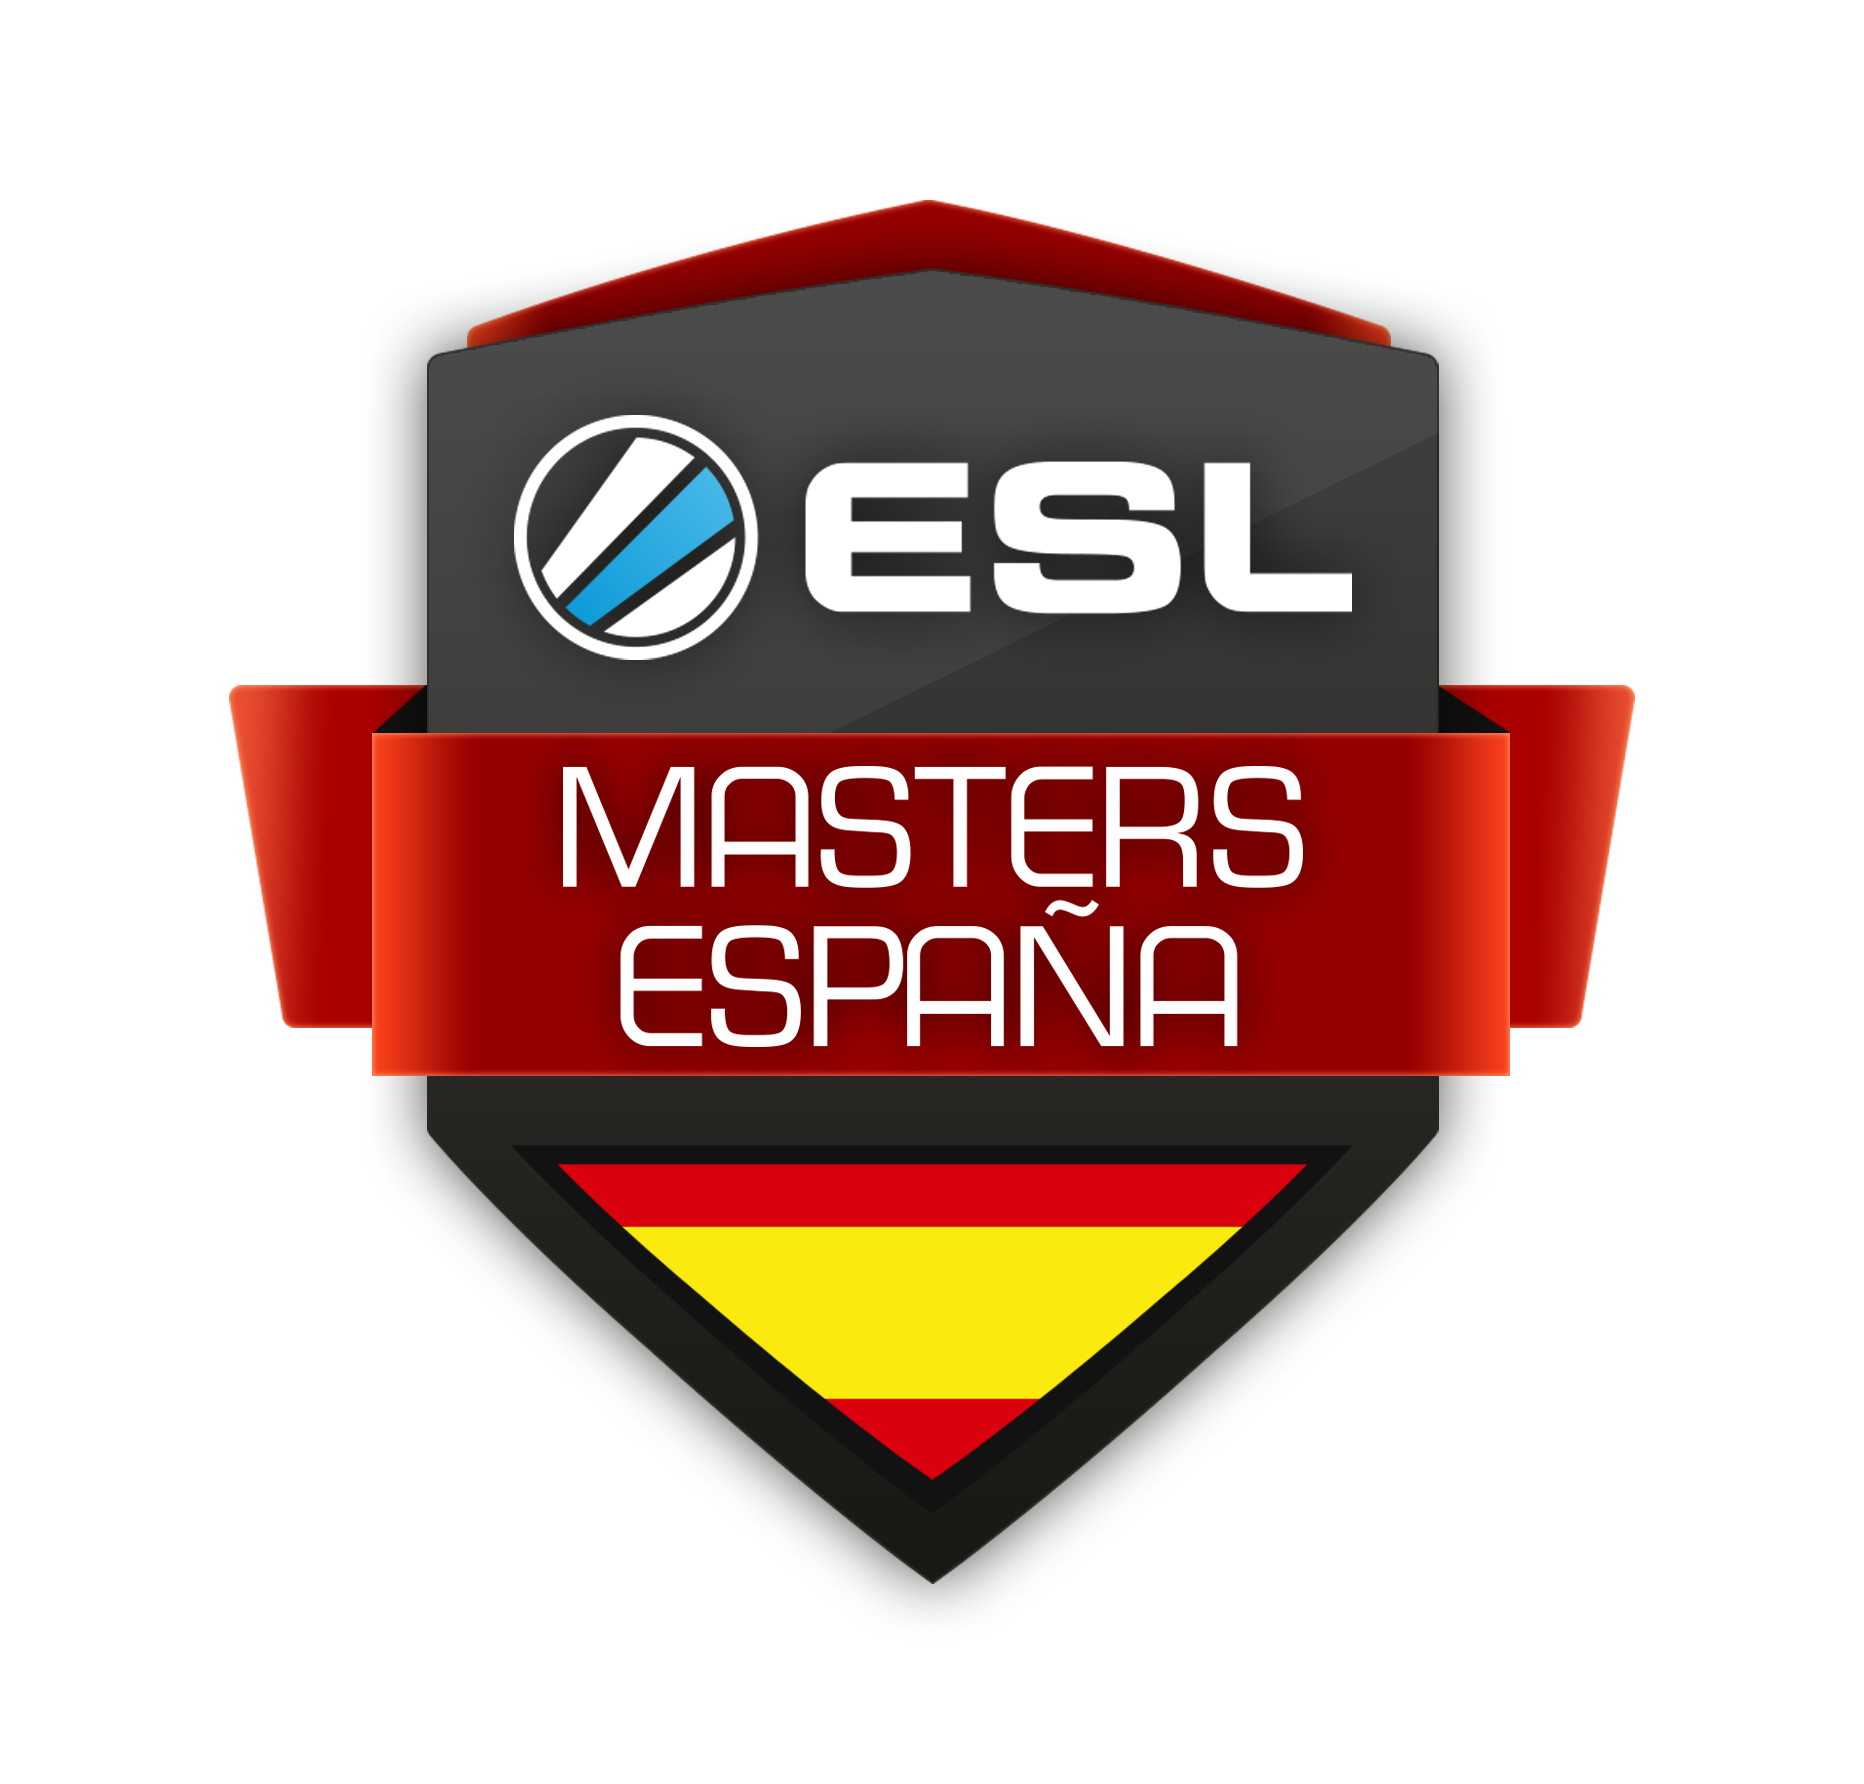 counter strike global offensive esl masters espana